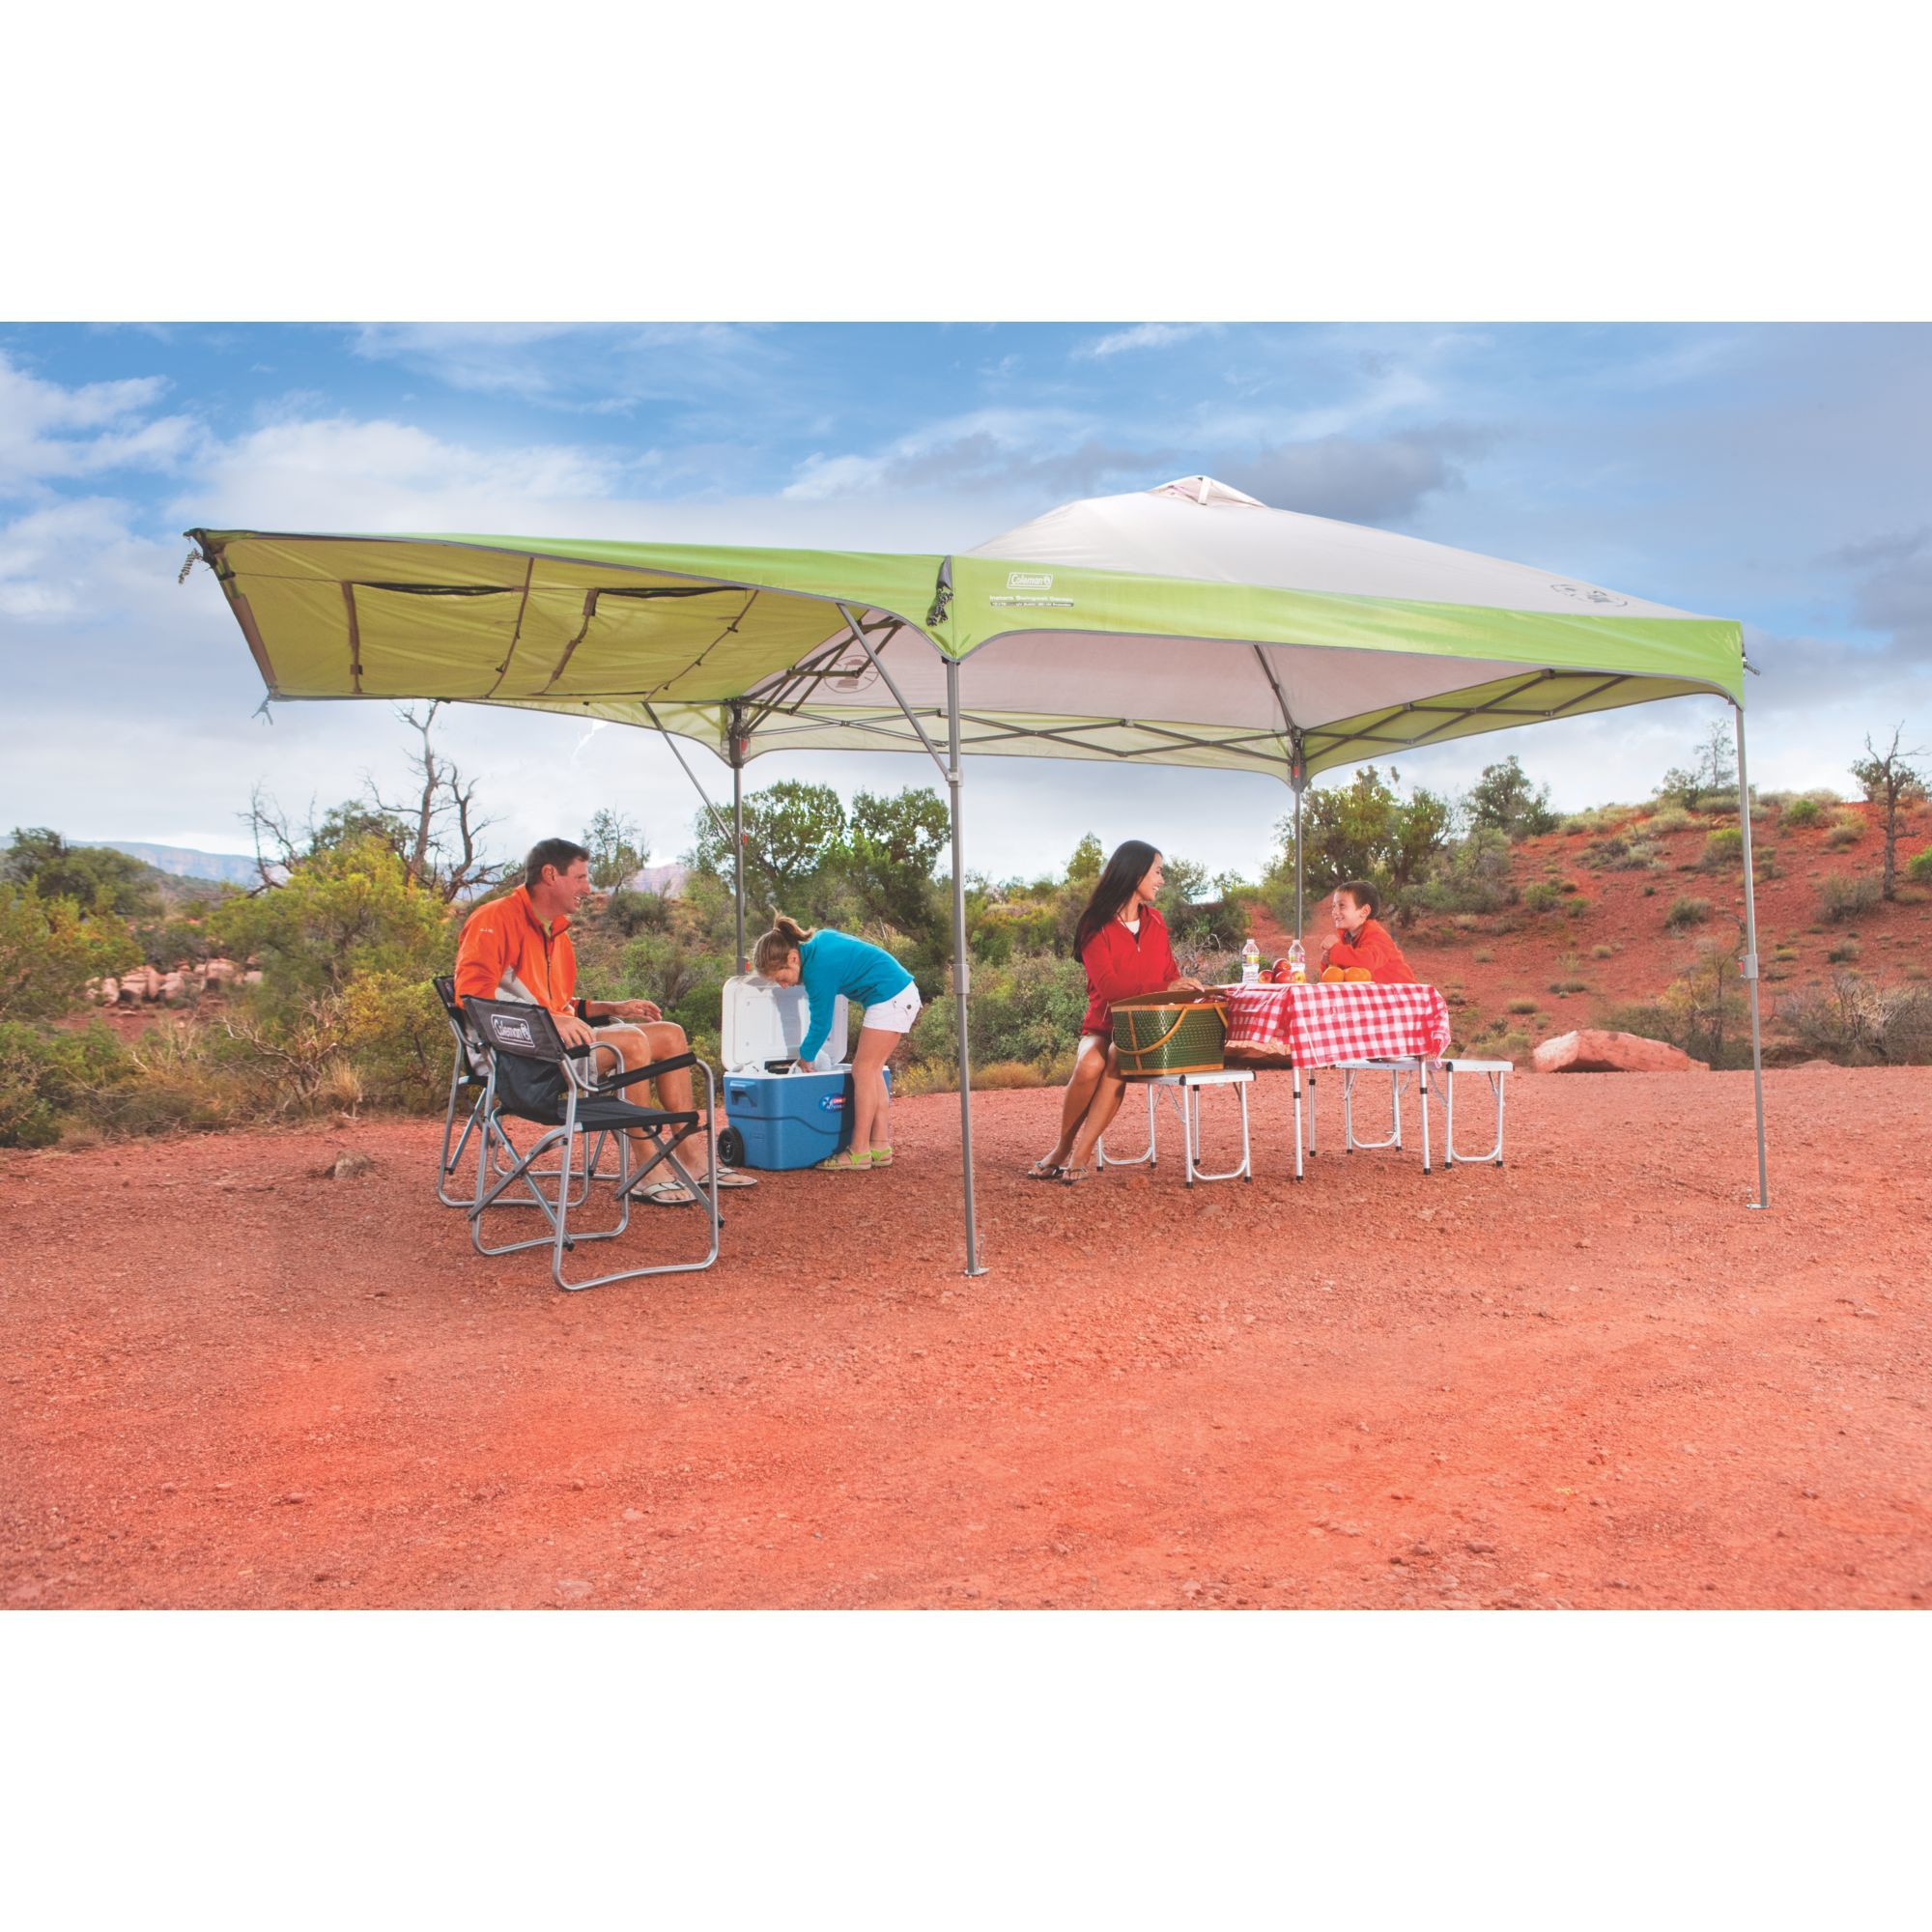 Get To The Fun Faster With A Coleman Swingwall Instant Canopy It